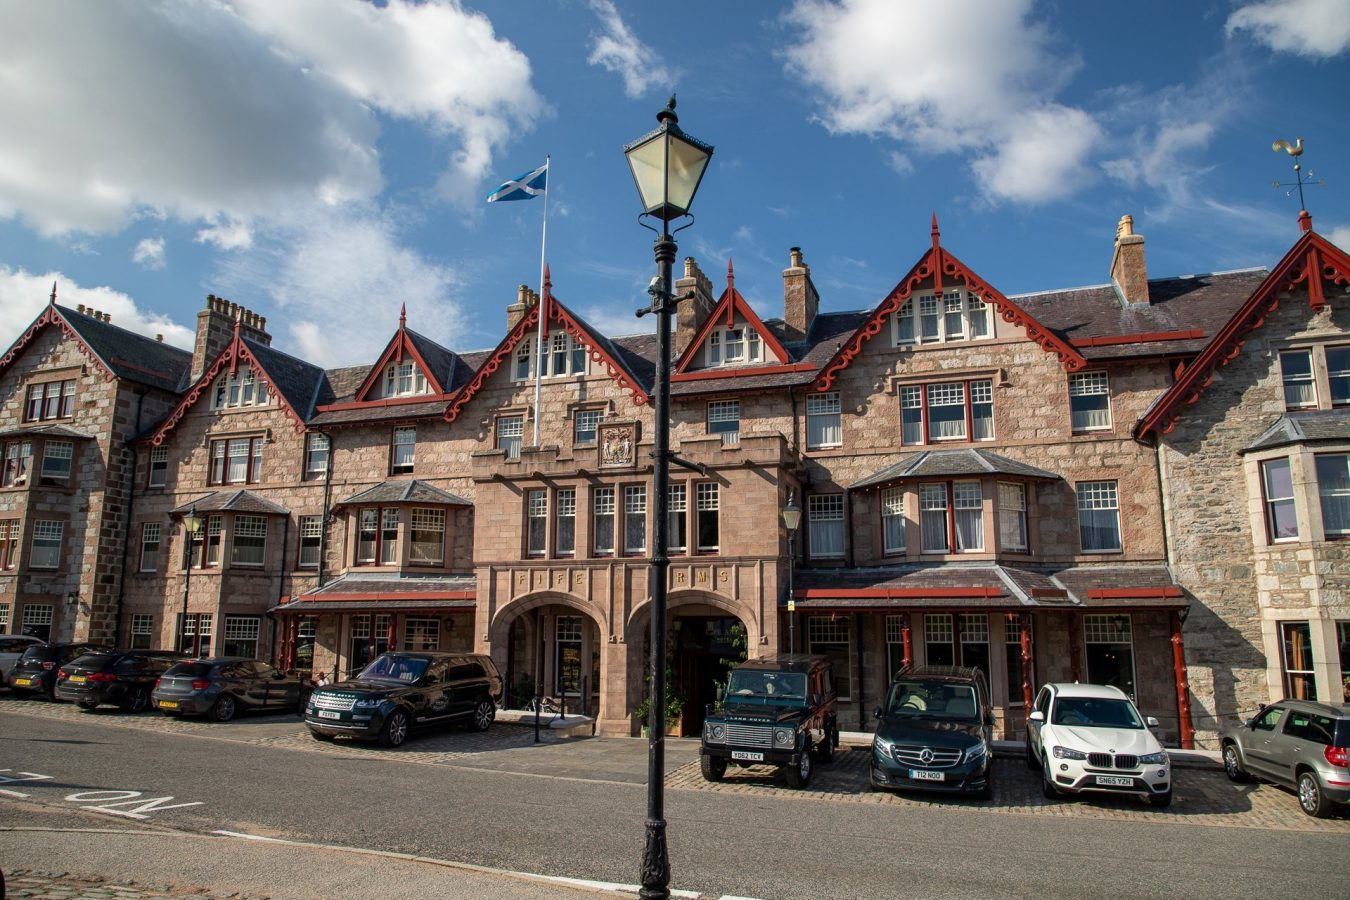 The Fife Arms Hotel